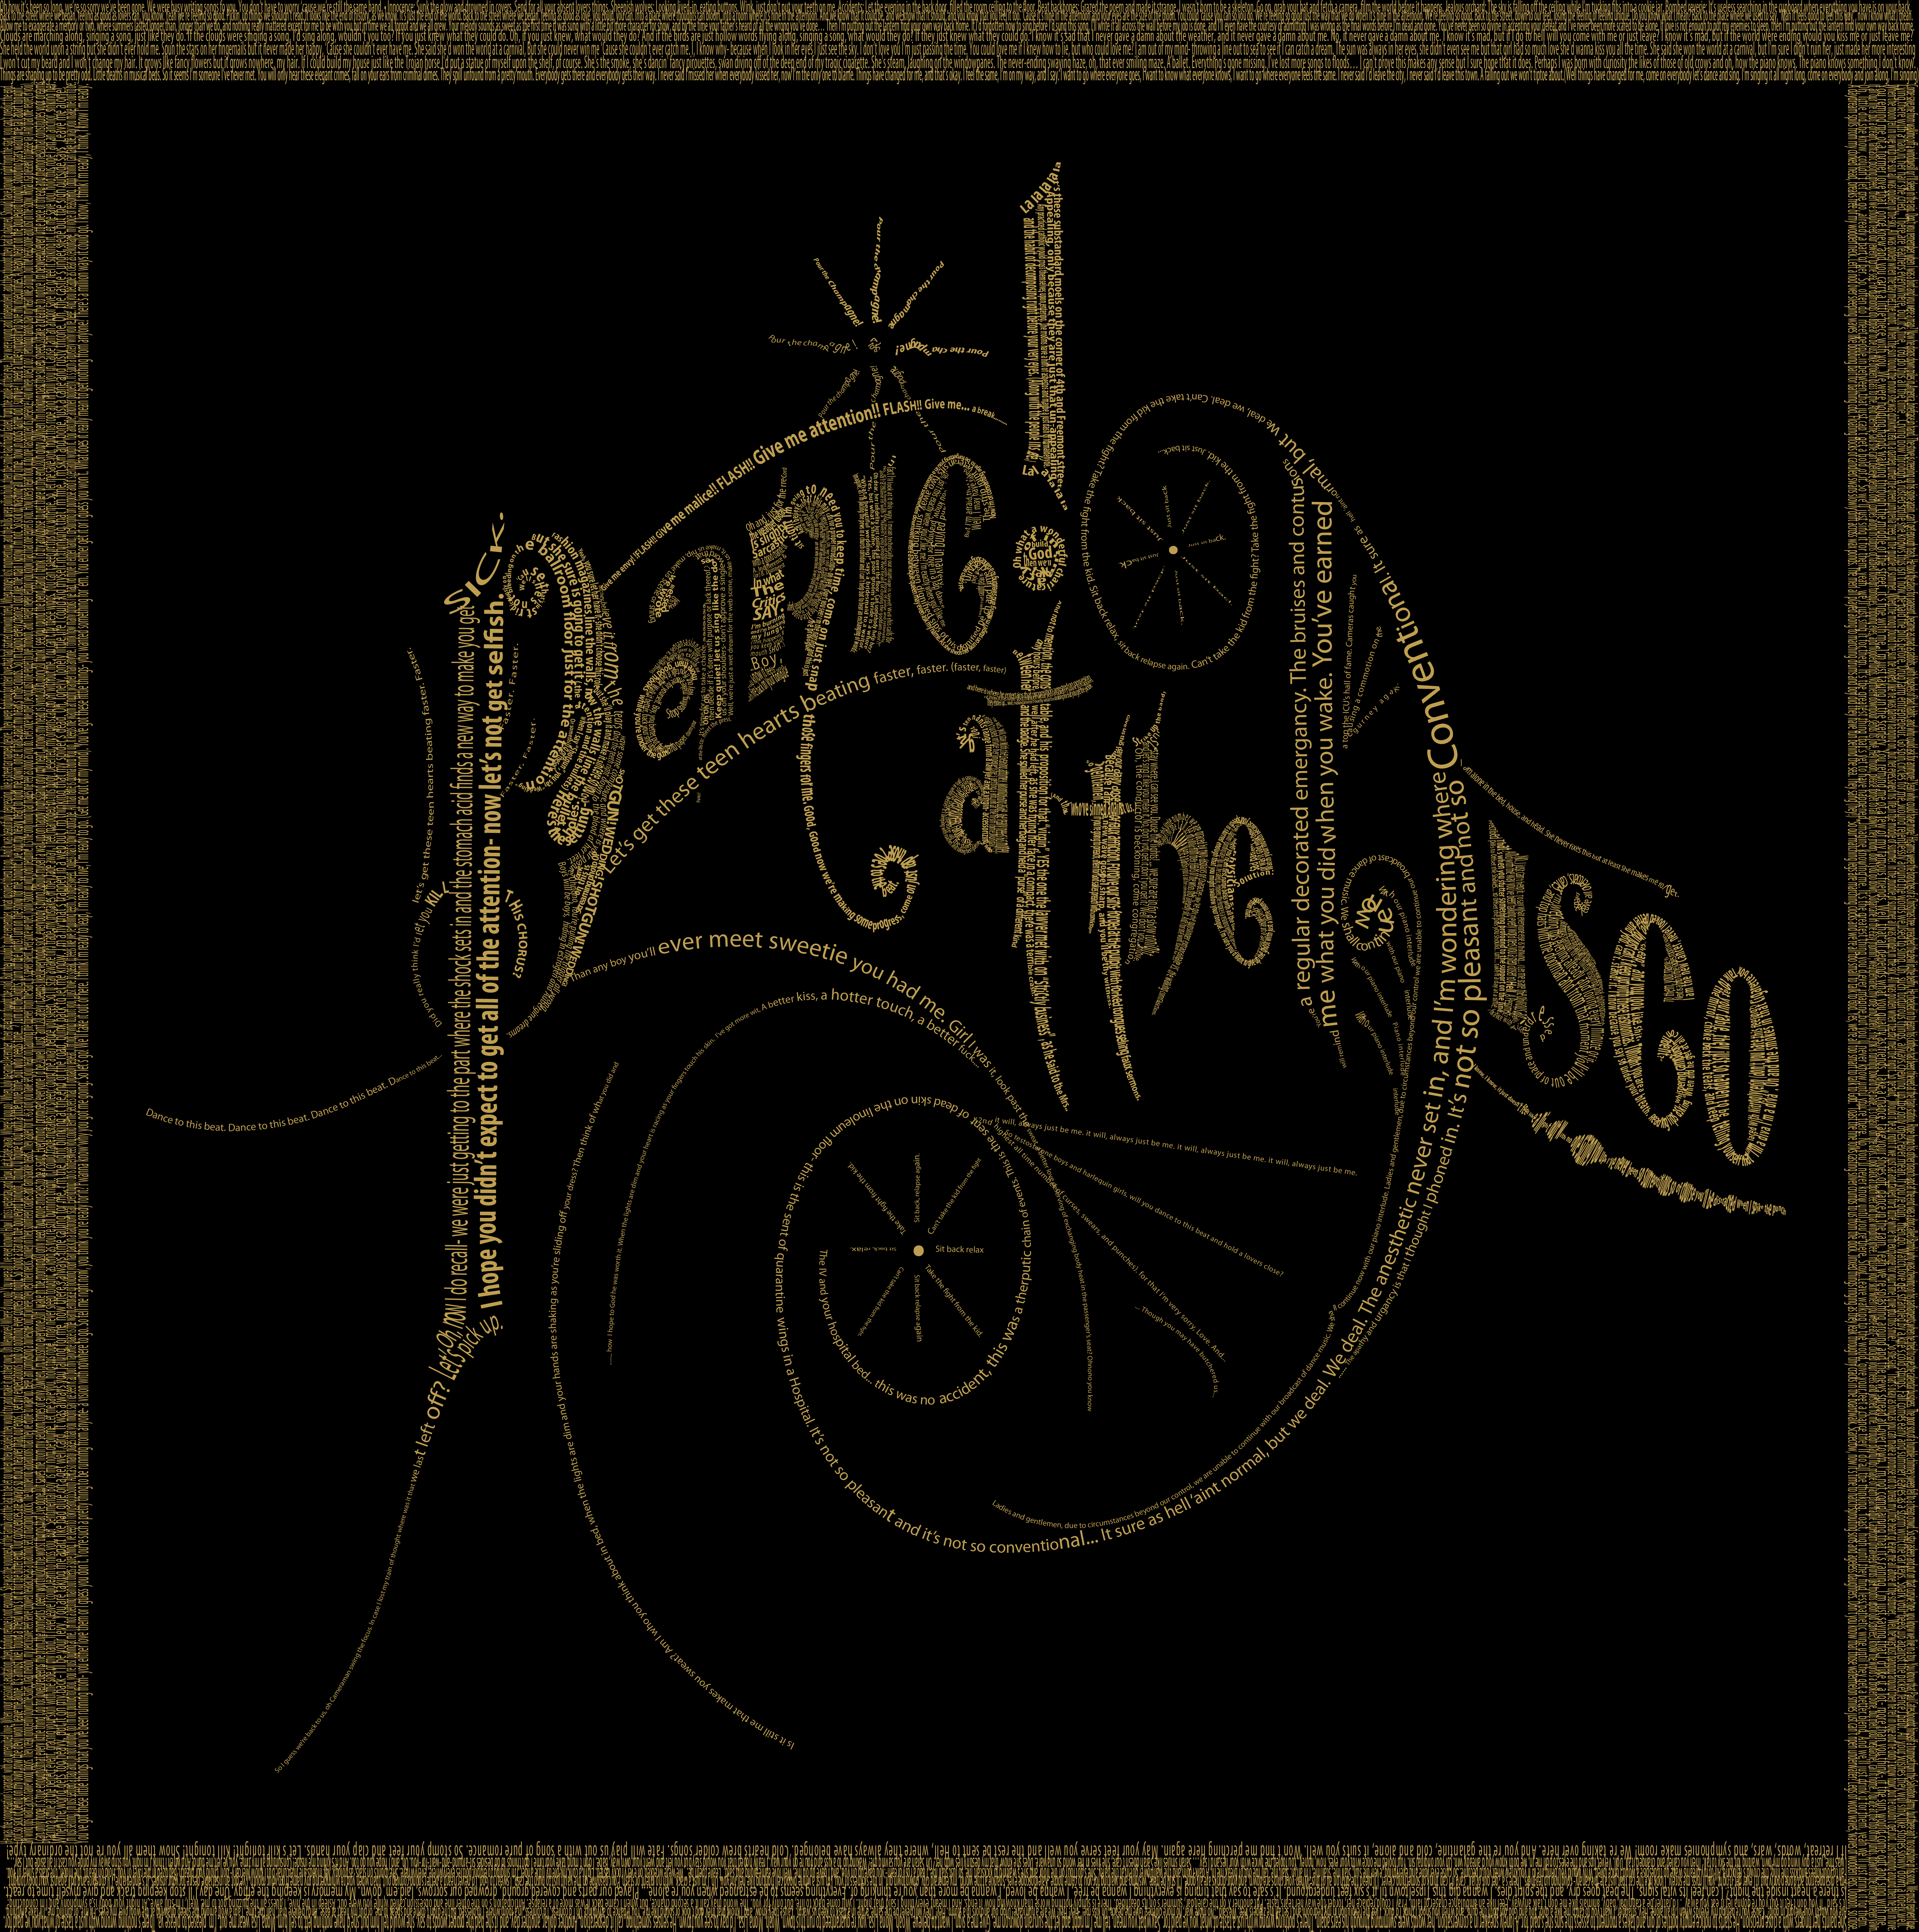 Panic! At The Disco Tribute By Xheartfailure On DeviantArt